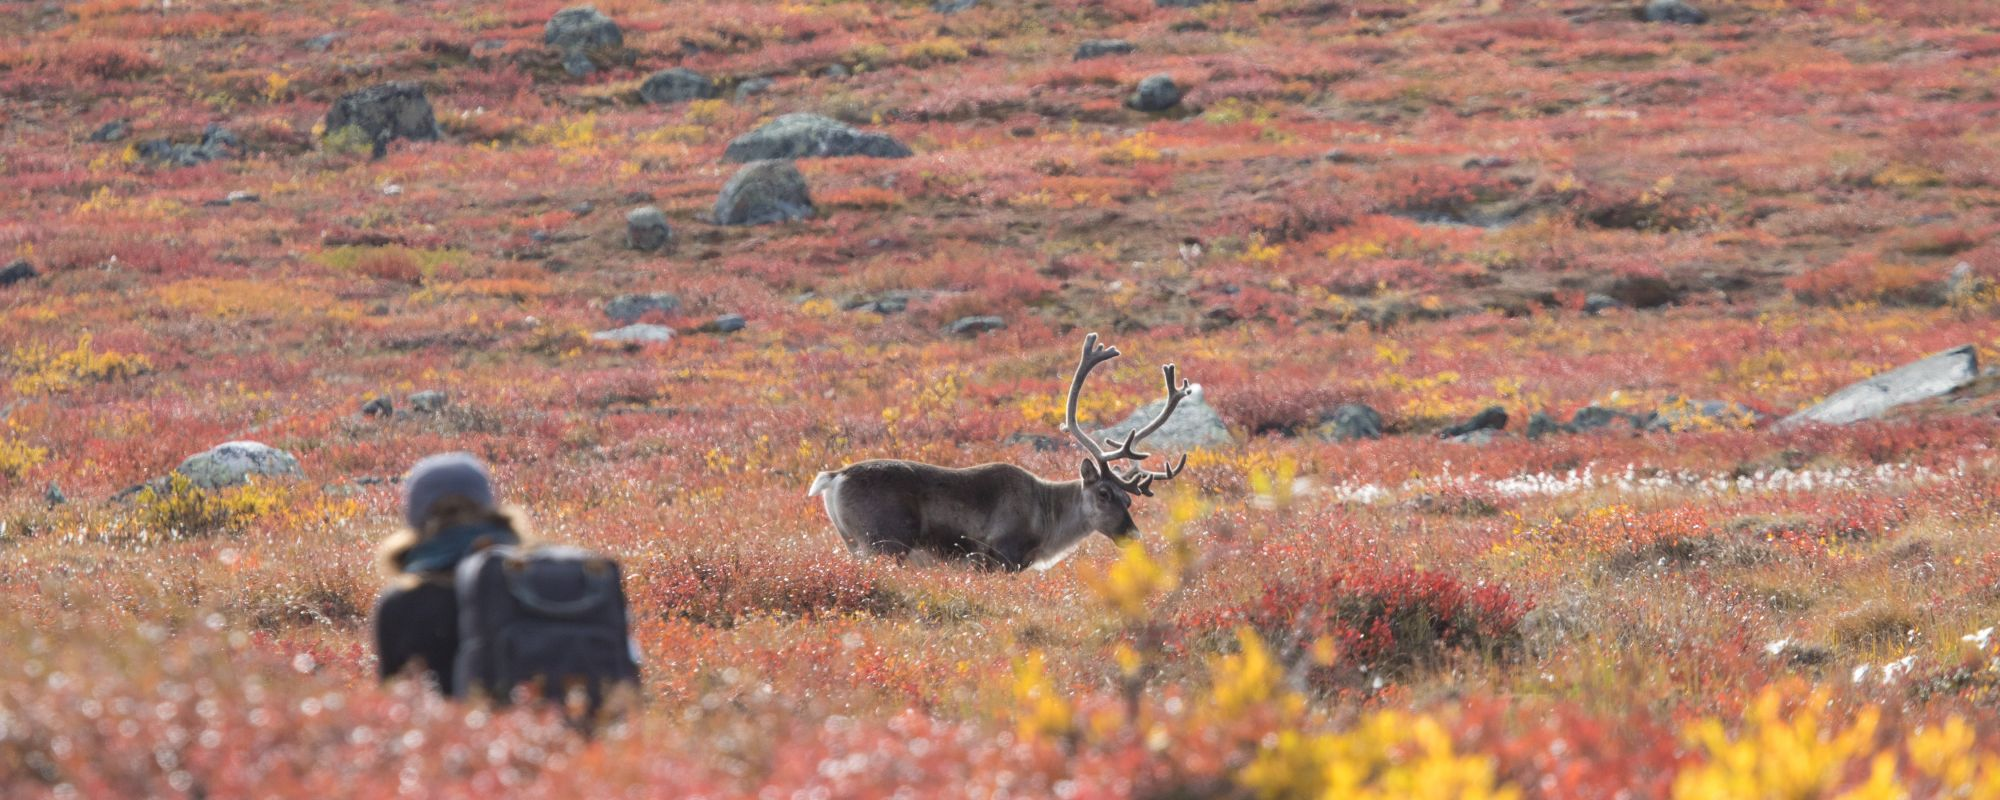 person squatted down watching a caribou in the barrens with fall colors